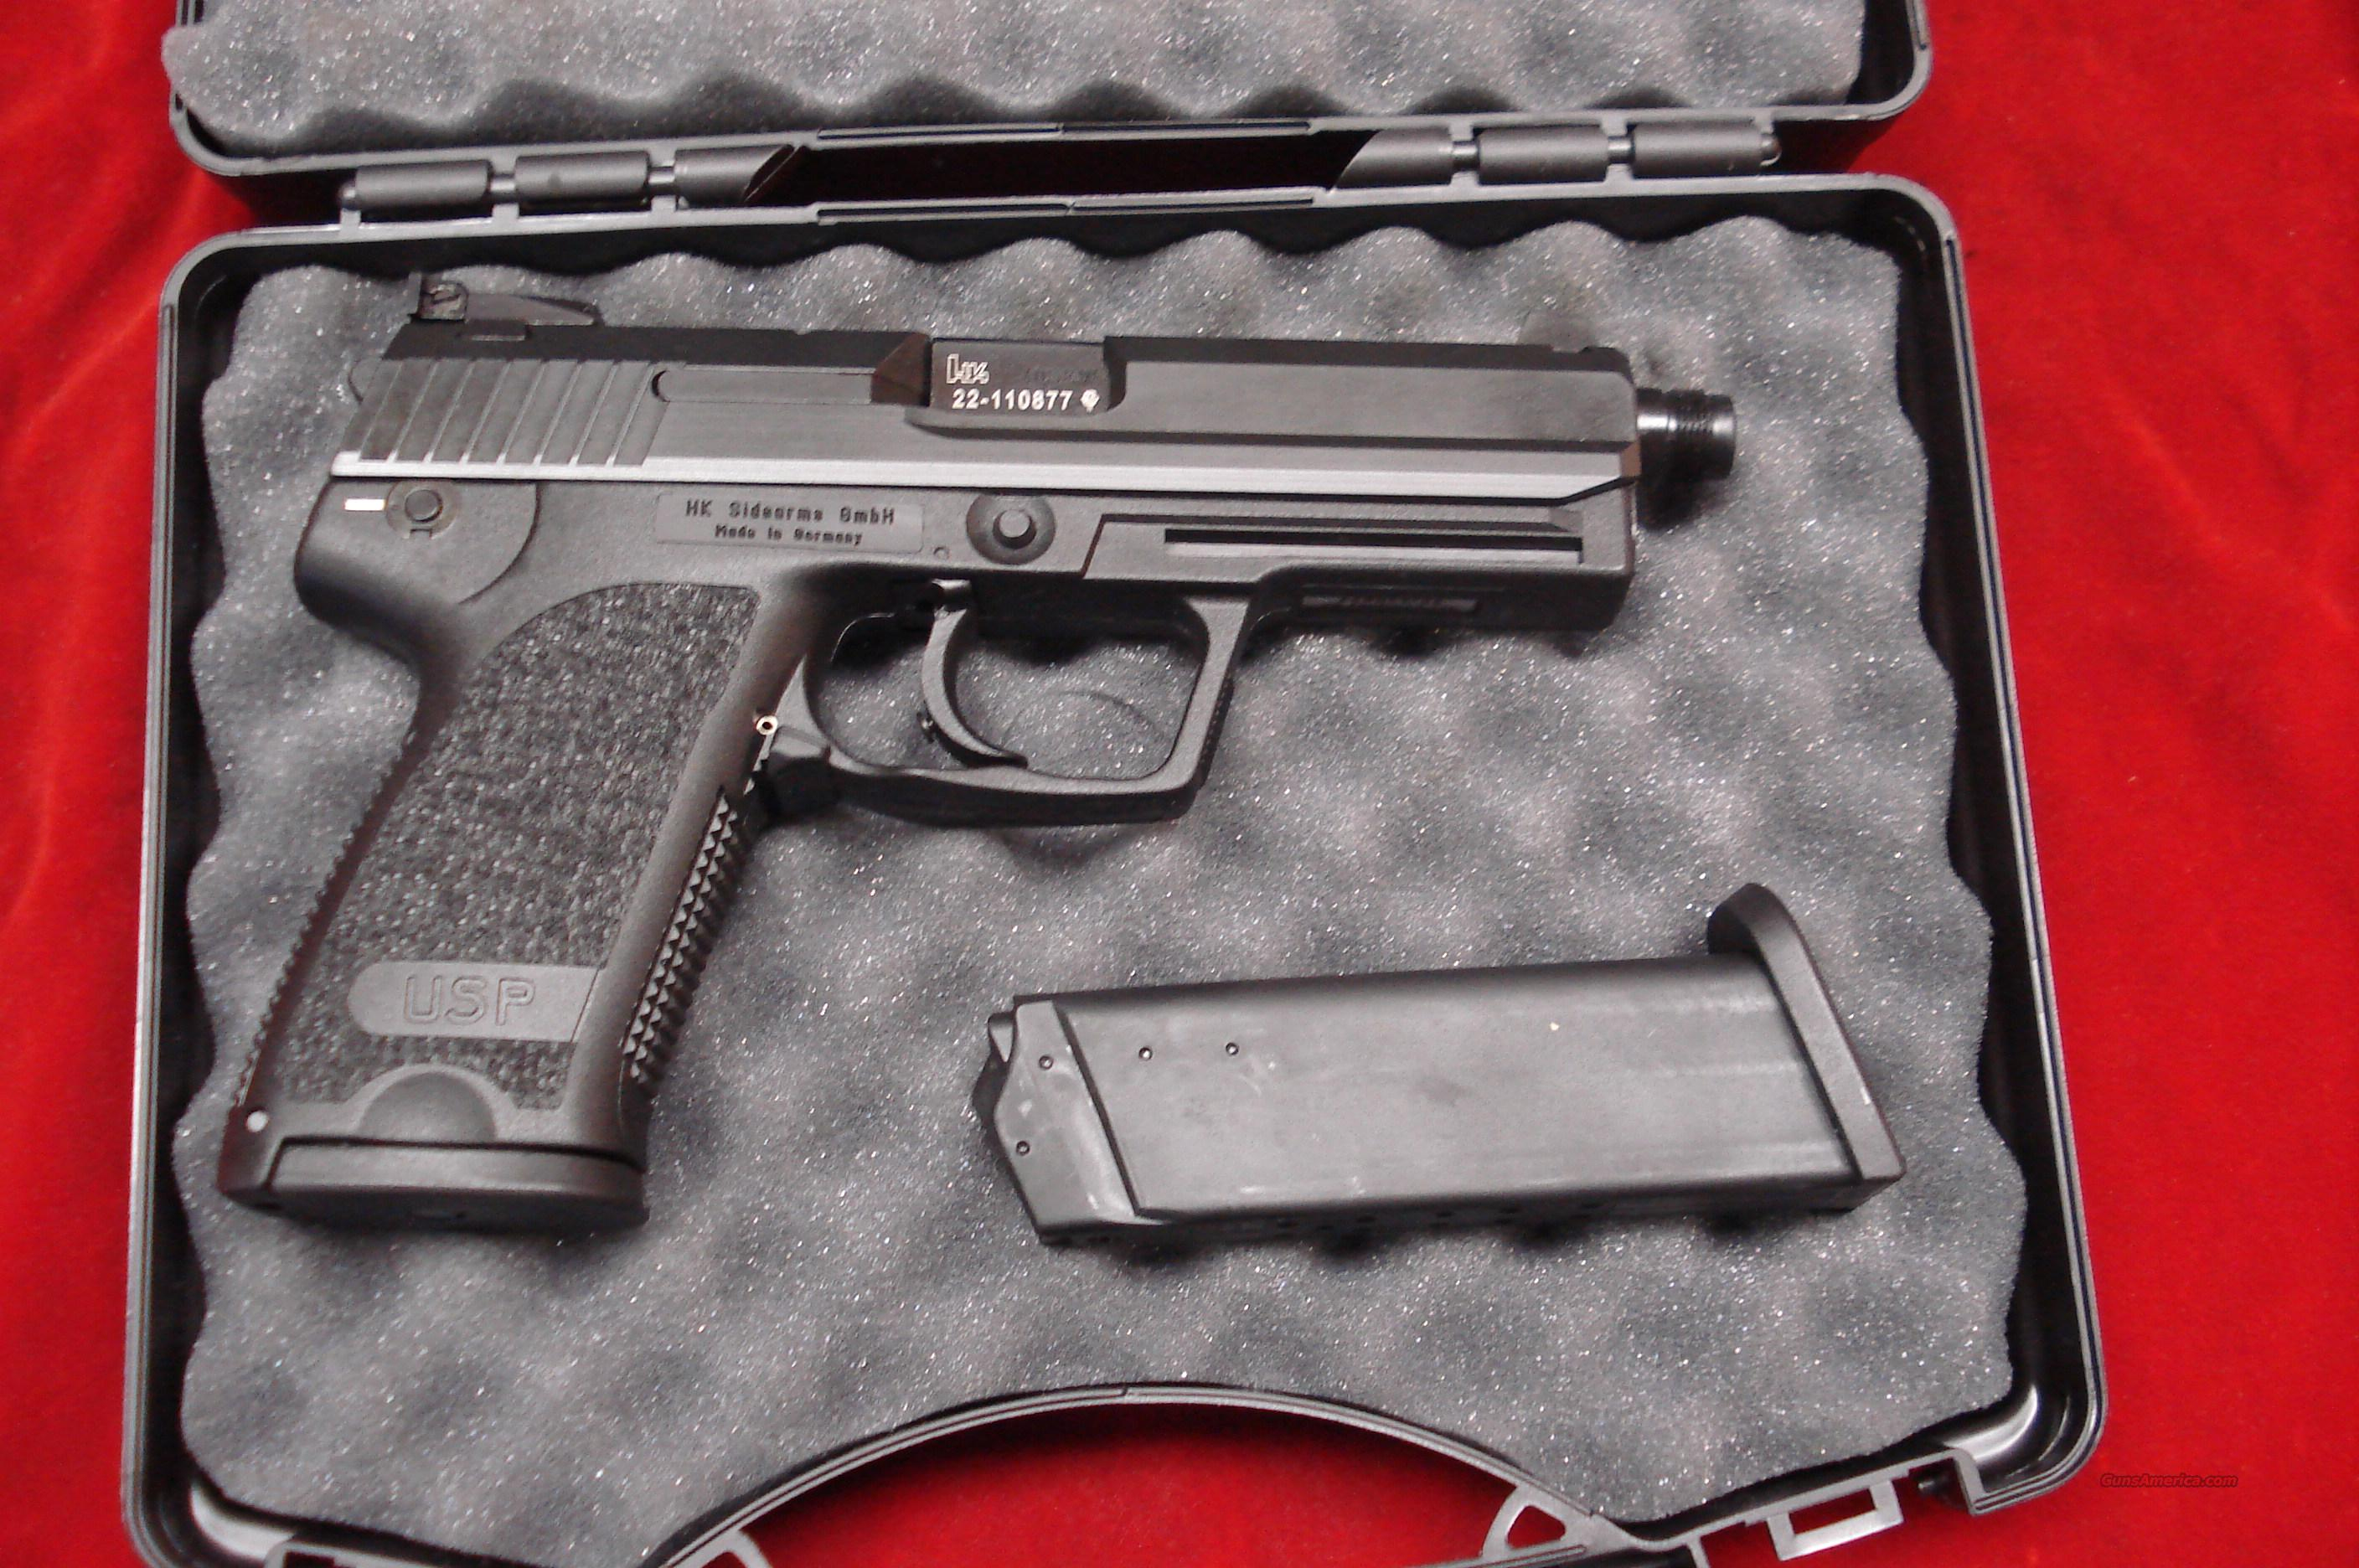 HK USP TACTICAL 40CAL. THREADED BARREL NEW  Guns > Pistols > Heckler & Koch Pistols > Polymer Frame